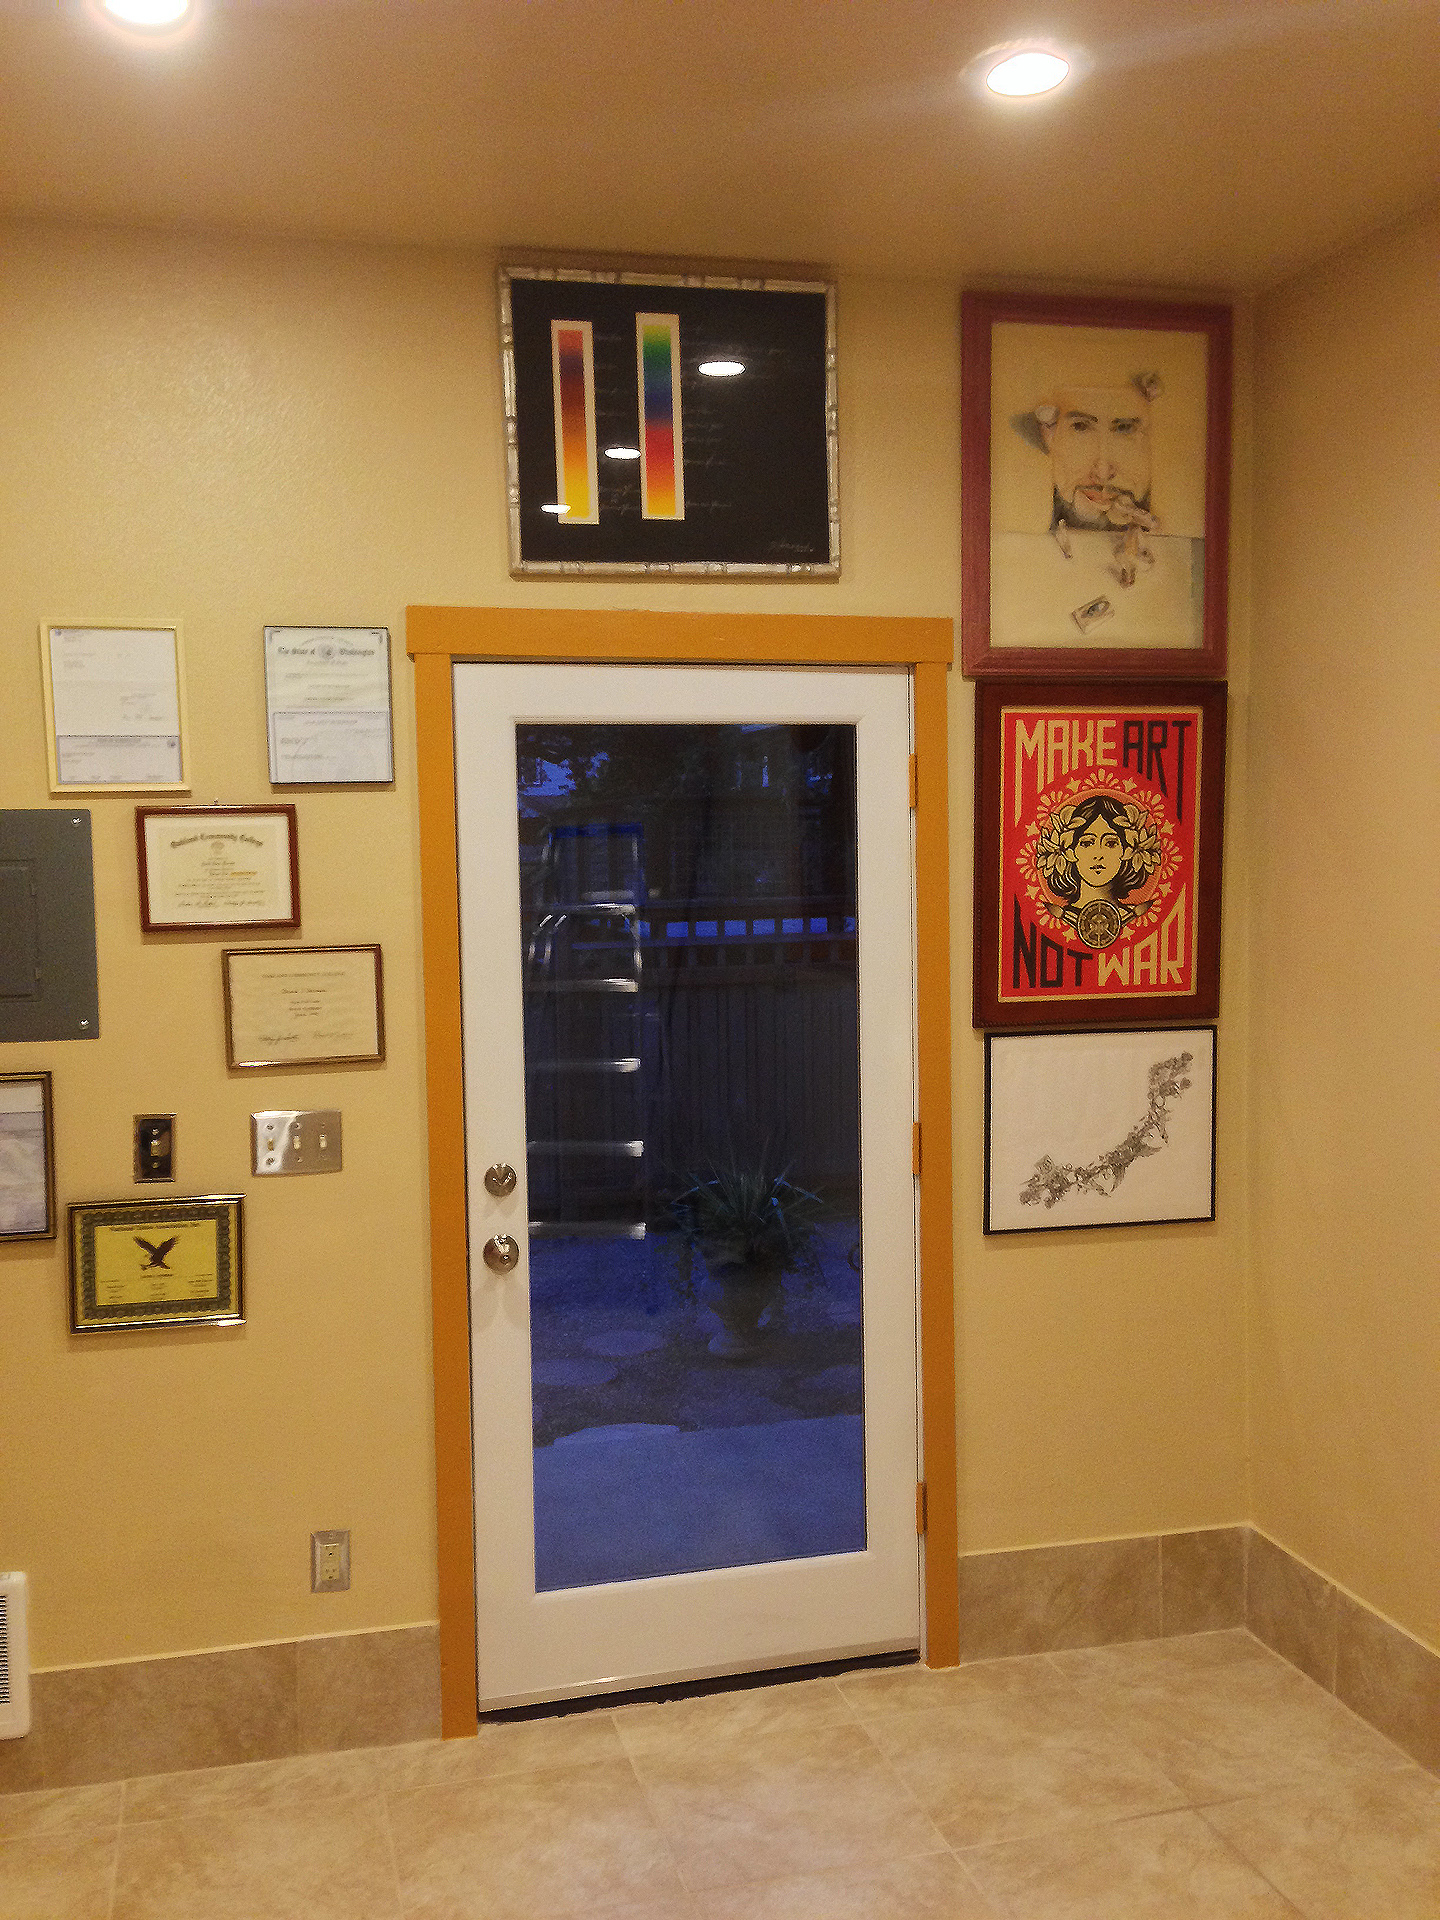 Framing entrance in artwork.